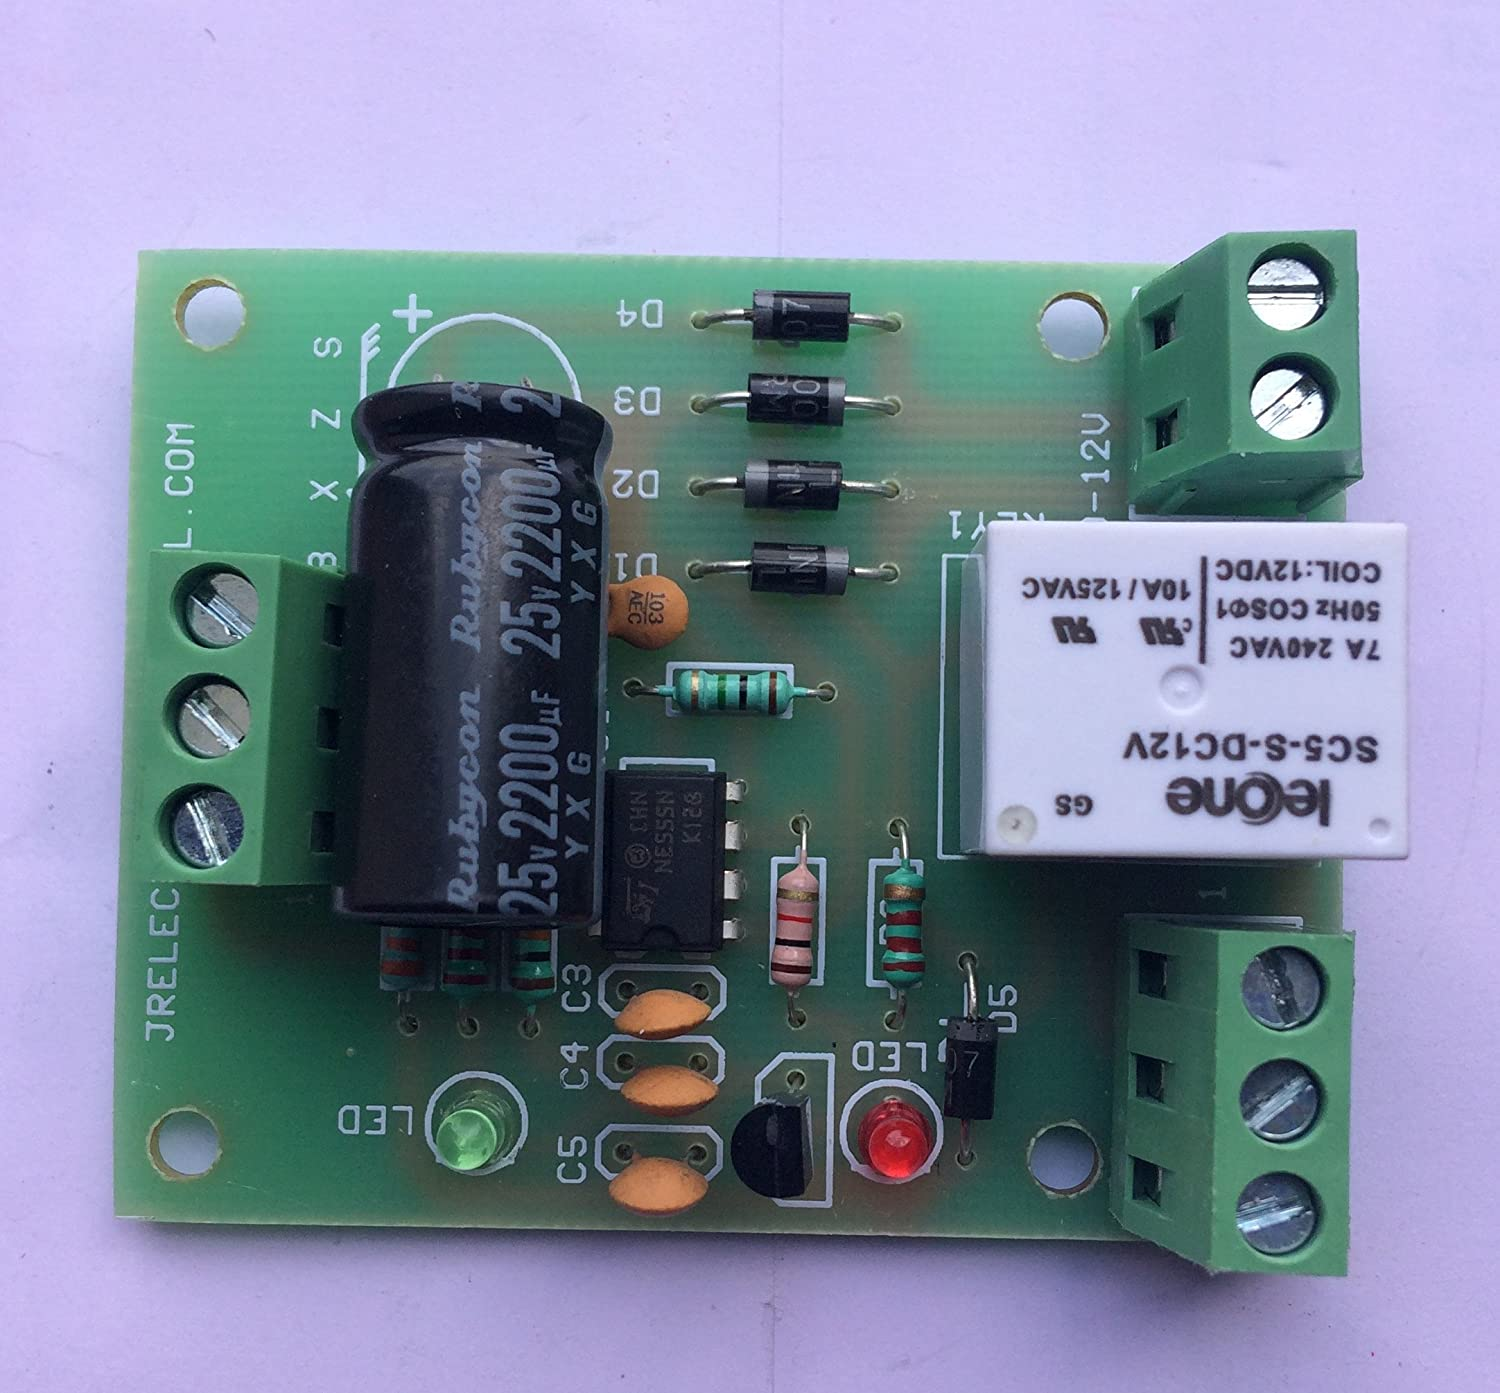 Buy Jr Electrokits Fully Automatic Water Level Controller Tank Circuit Board Electronicspcb Parts And Functions Works On 12vdc Online At Low Prices In India